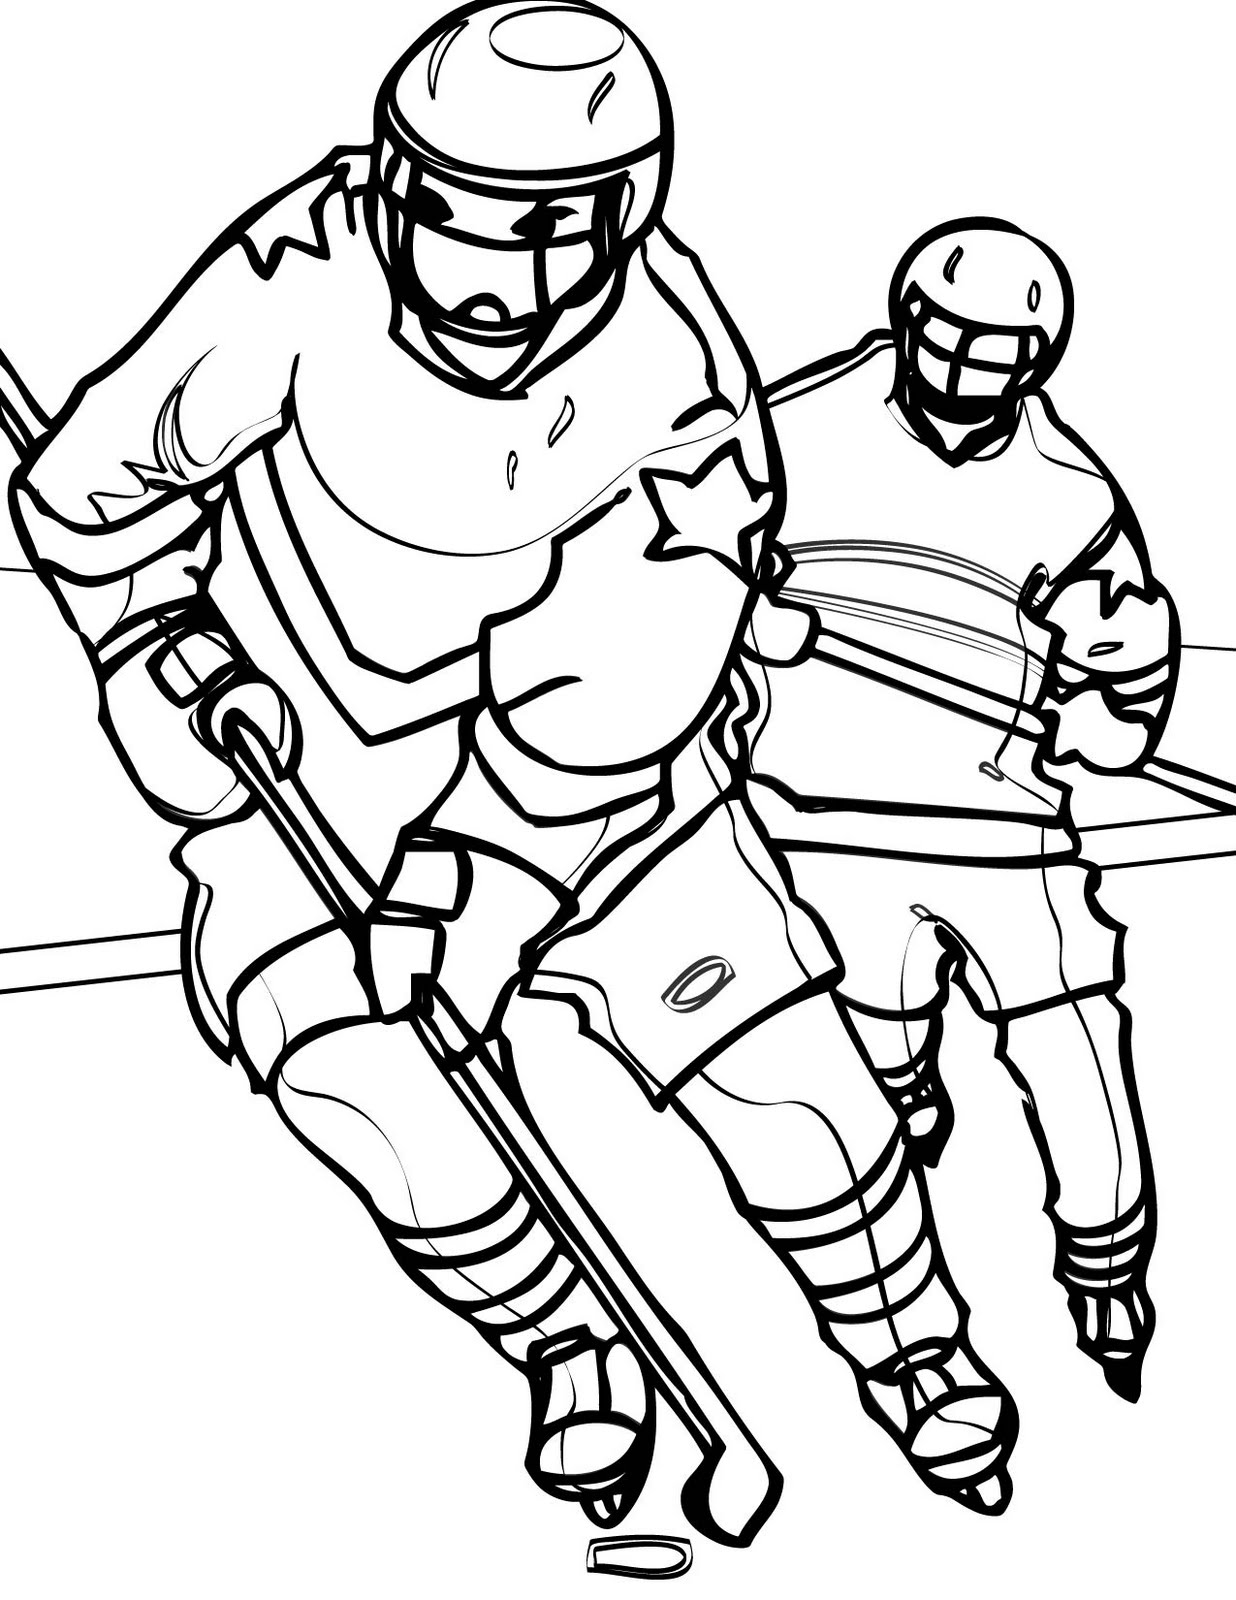 nhl printable coloring pages - photo#49